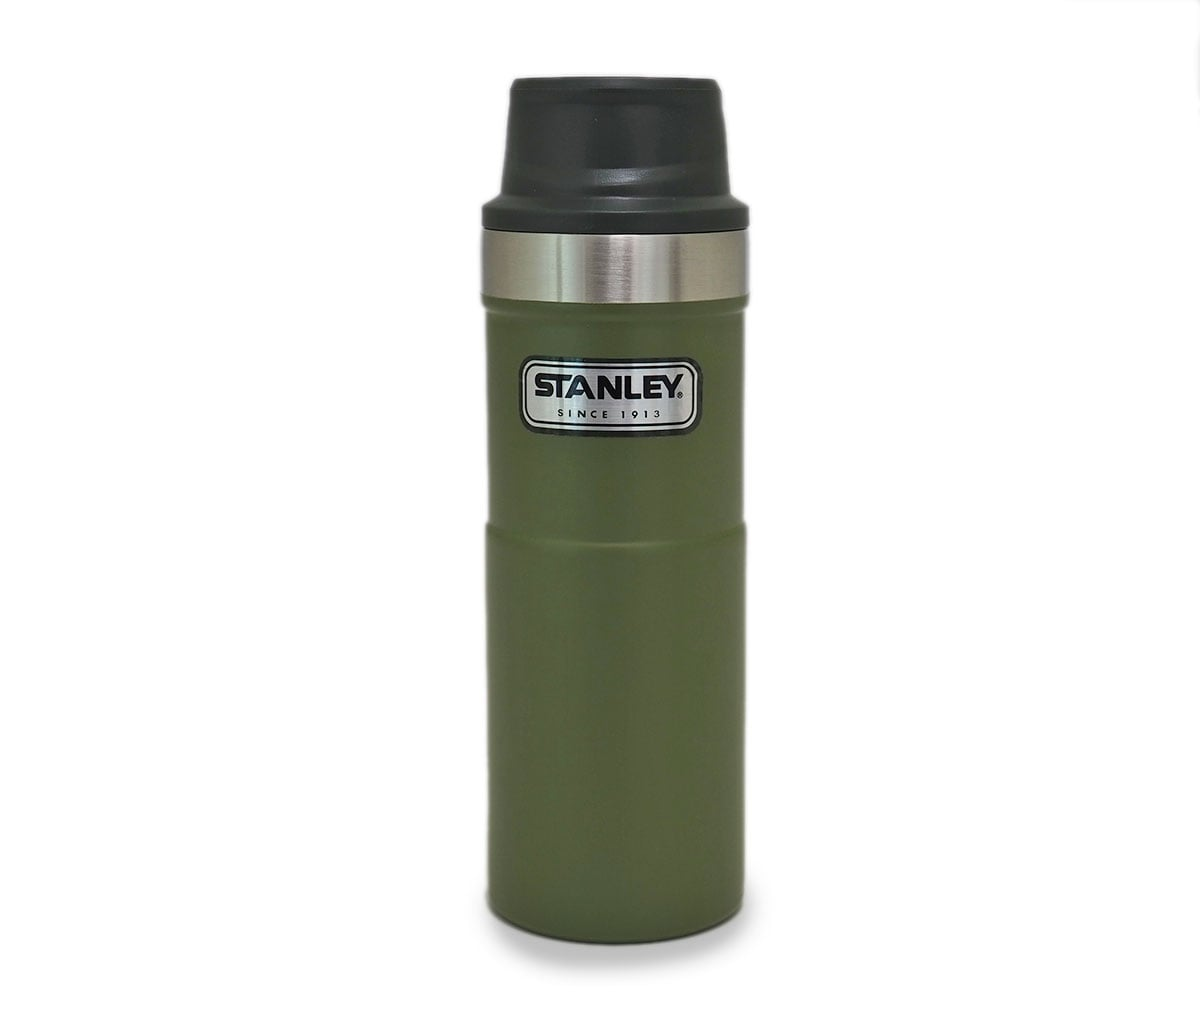 Stanley One Hand 2.0, Olive Drab